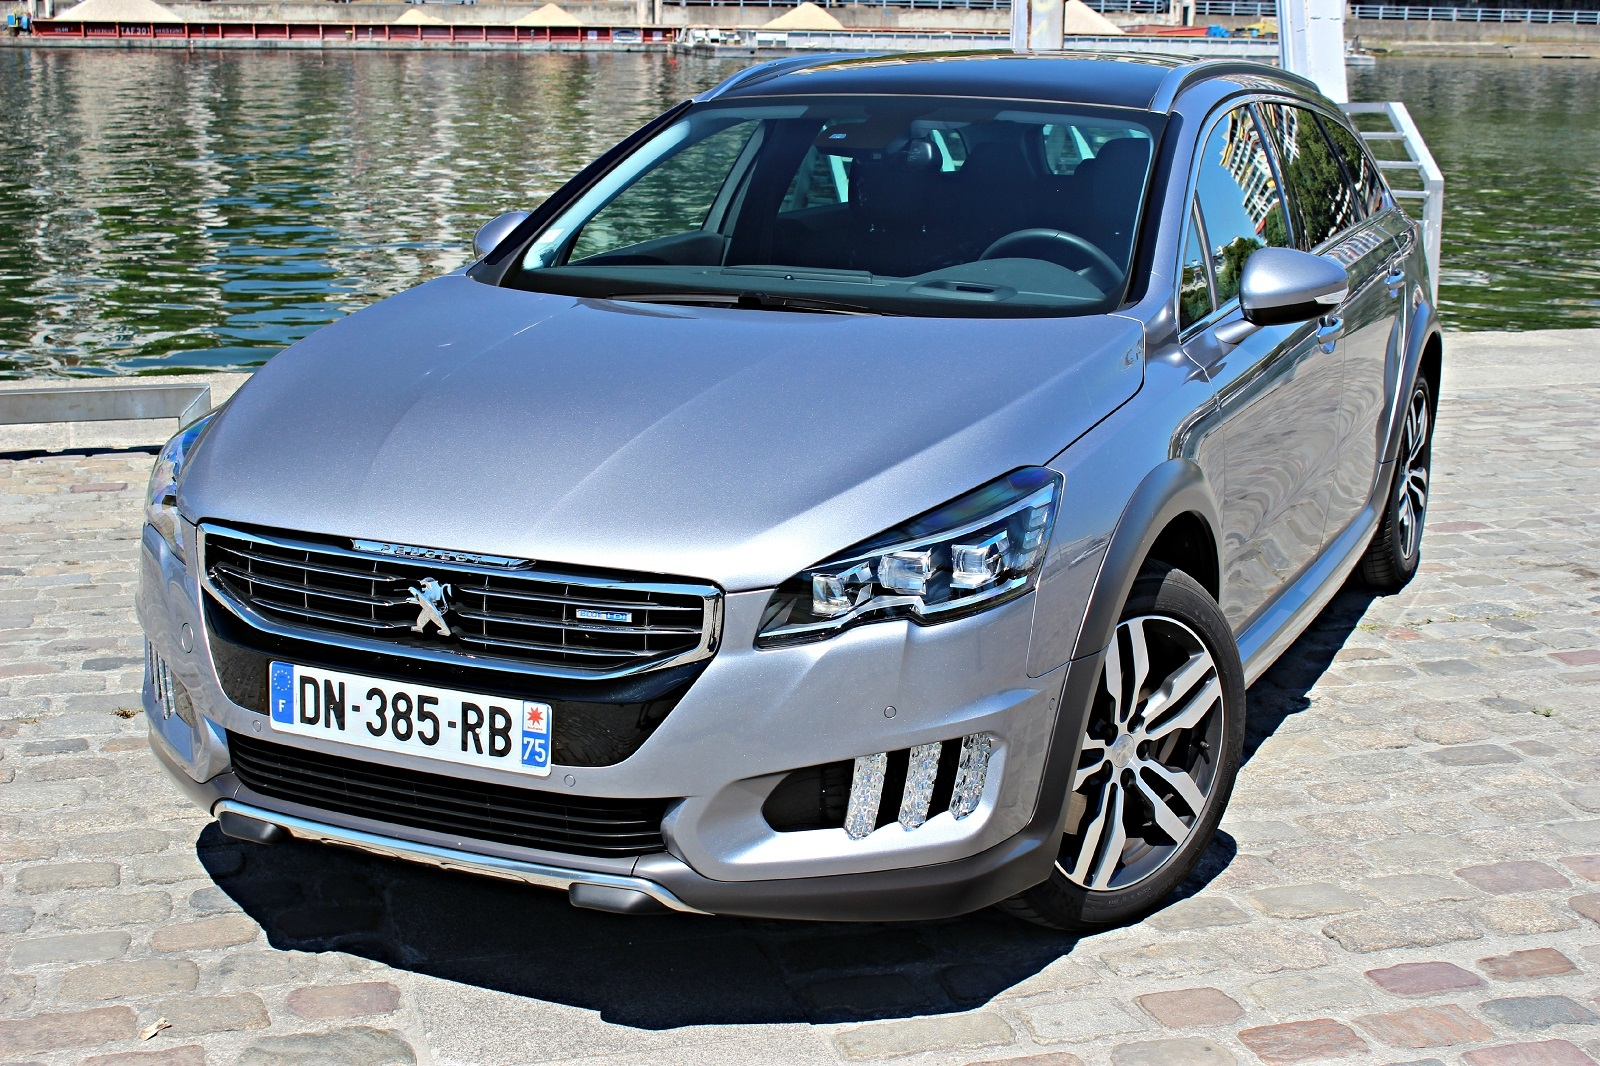 essai peugeot 508 rxh 20 l bluehdi 180 la forme avant autos post. Black Bedroom Furniture Sets. Home Design Ideas